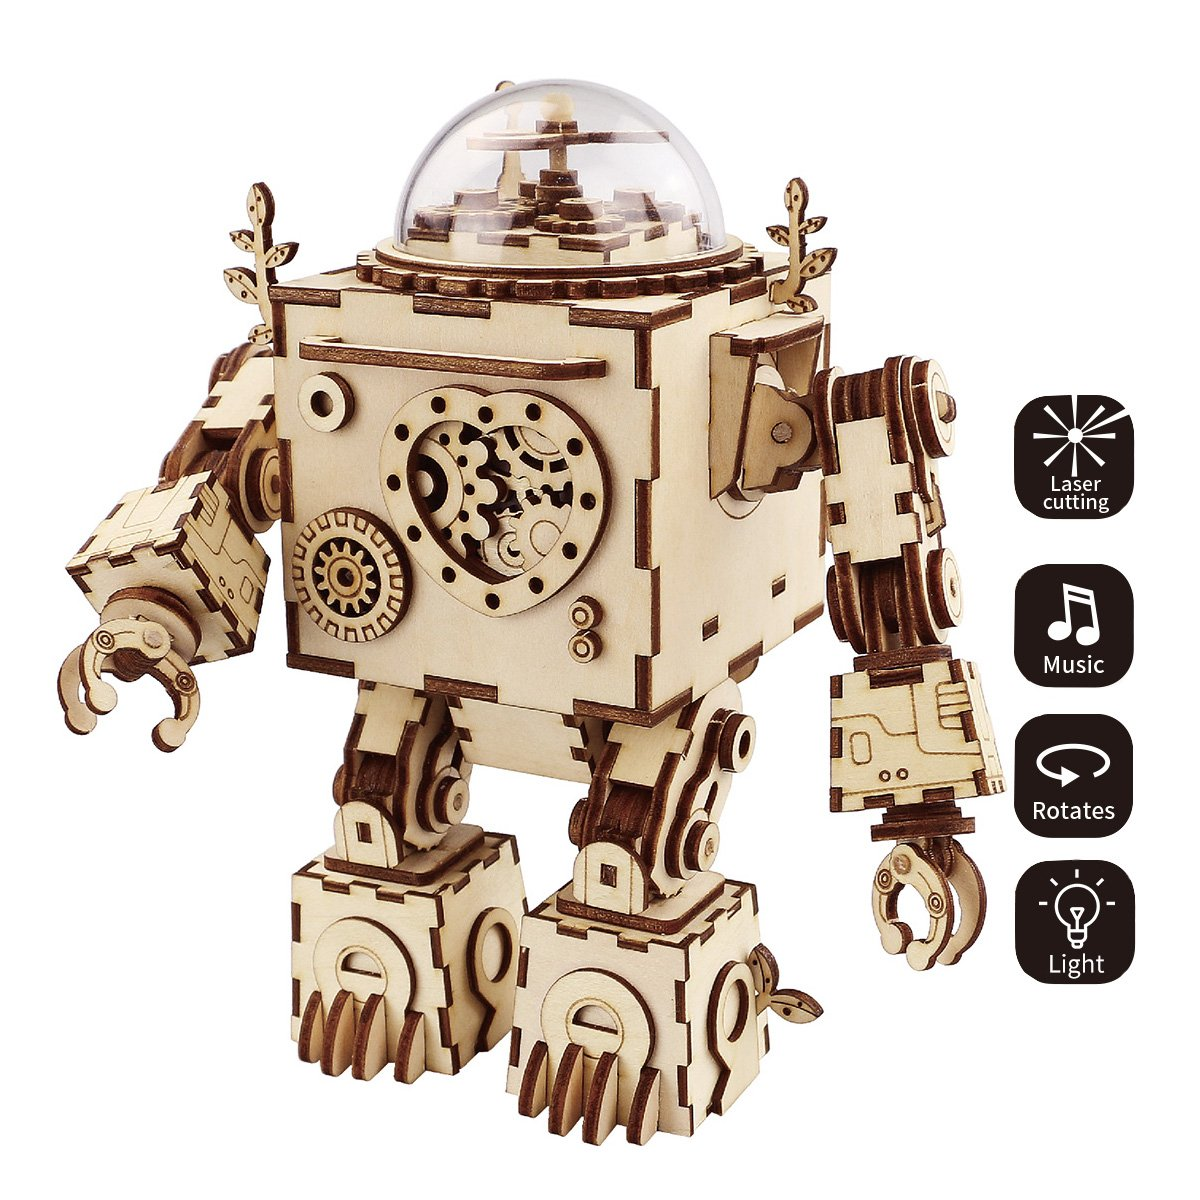 ROKR 3D Wooden Puzzle Music Box Craft Toys Best Gifts for Men Women Kids Machinarium DIY Robot Figures with Light for Christmas Birthday by ROKR